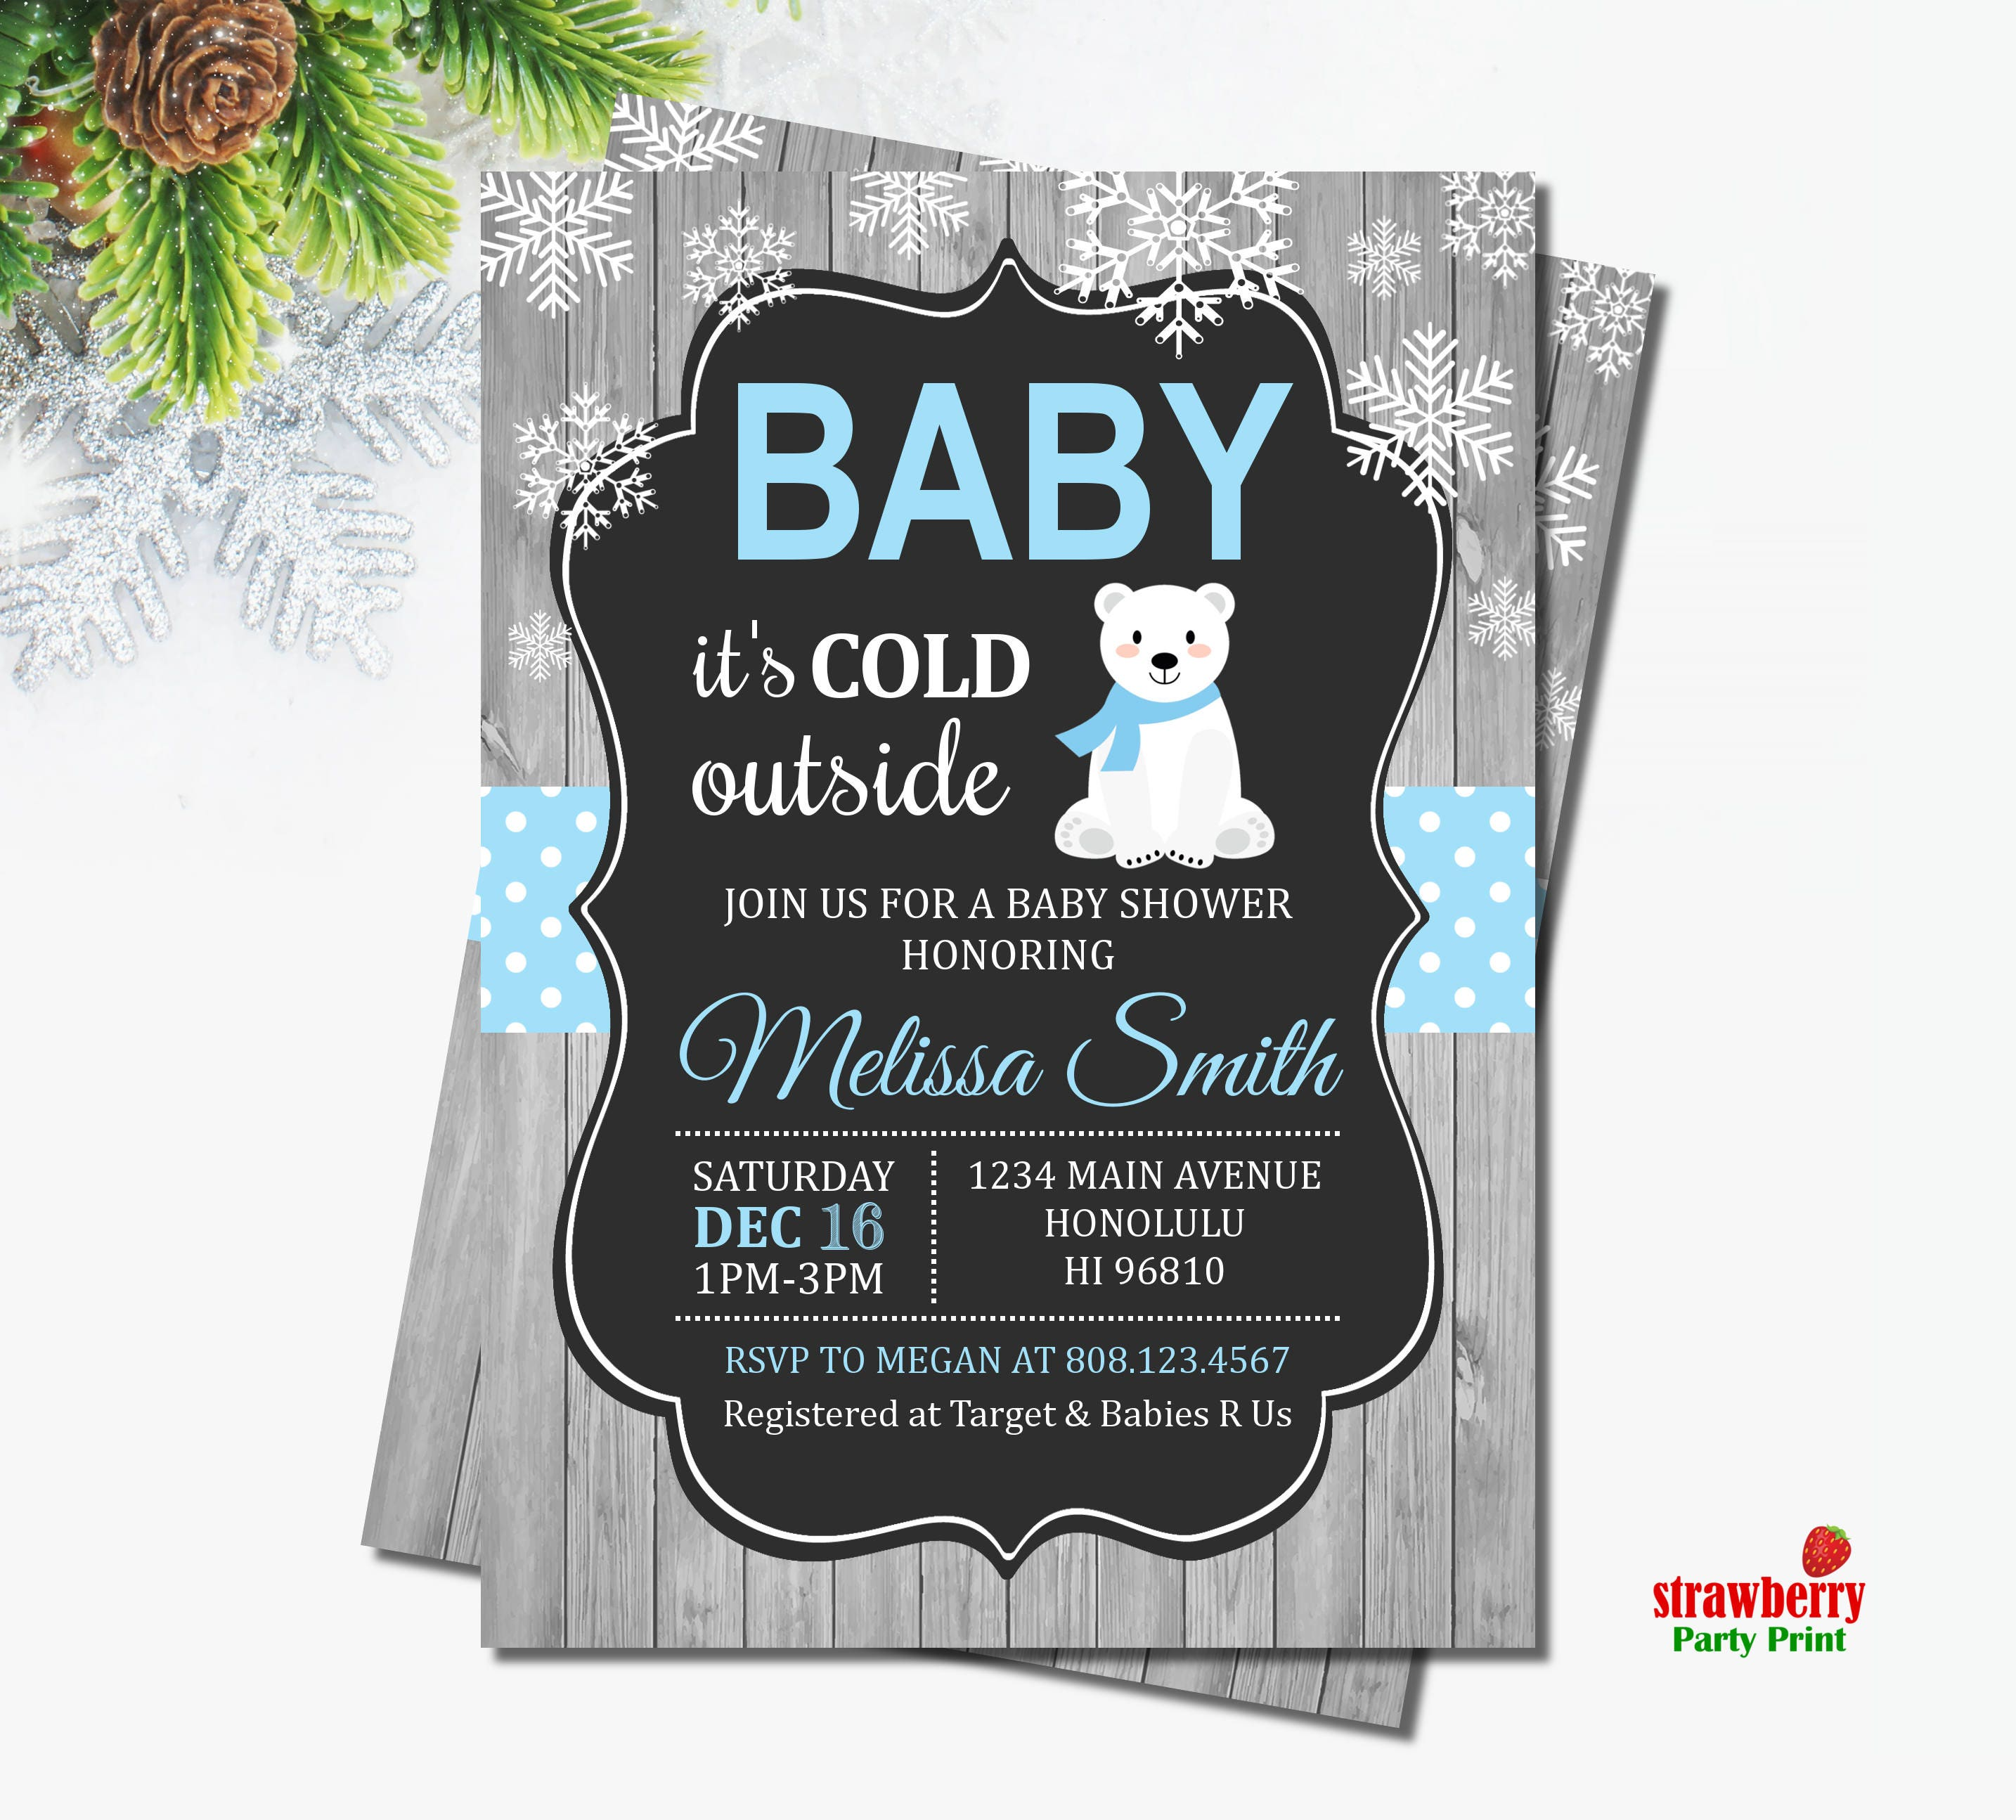 Baby Its Cold Outside Baby Shower Invitation. Winter Baby Shower ...